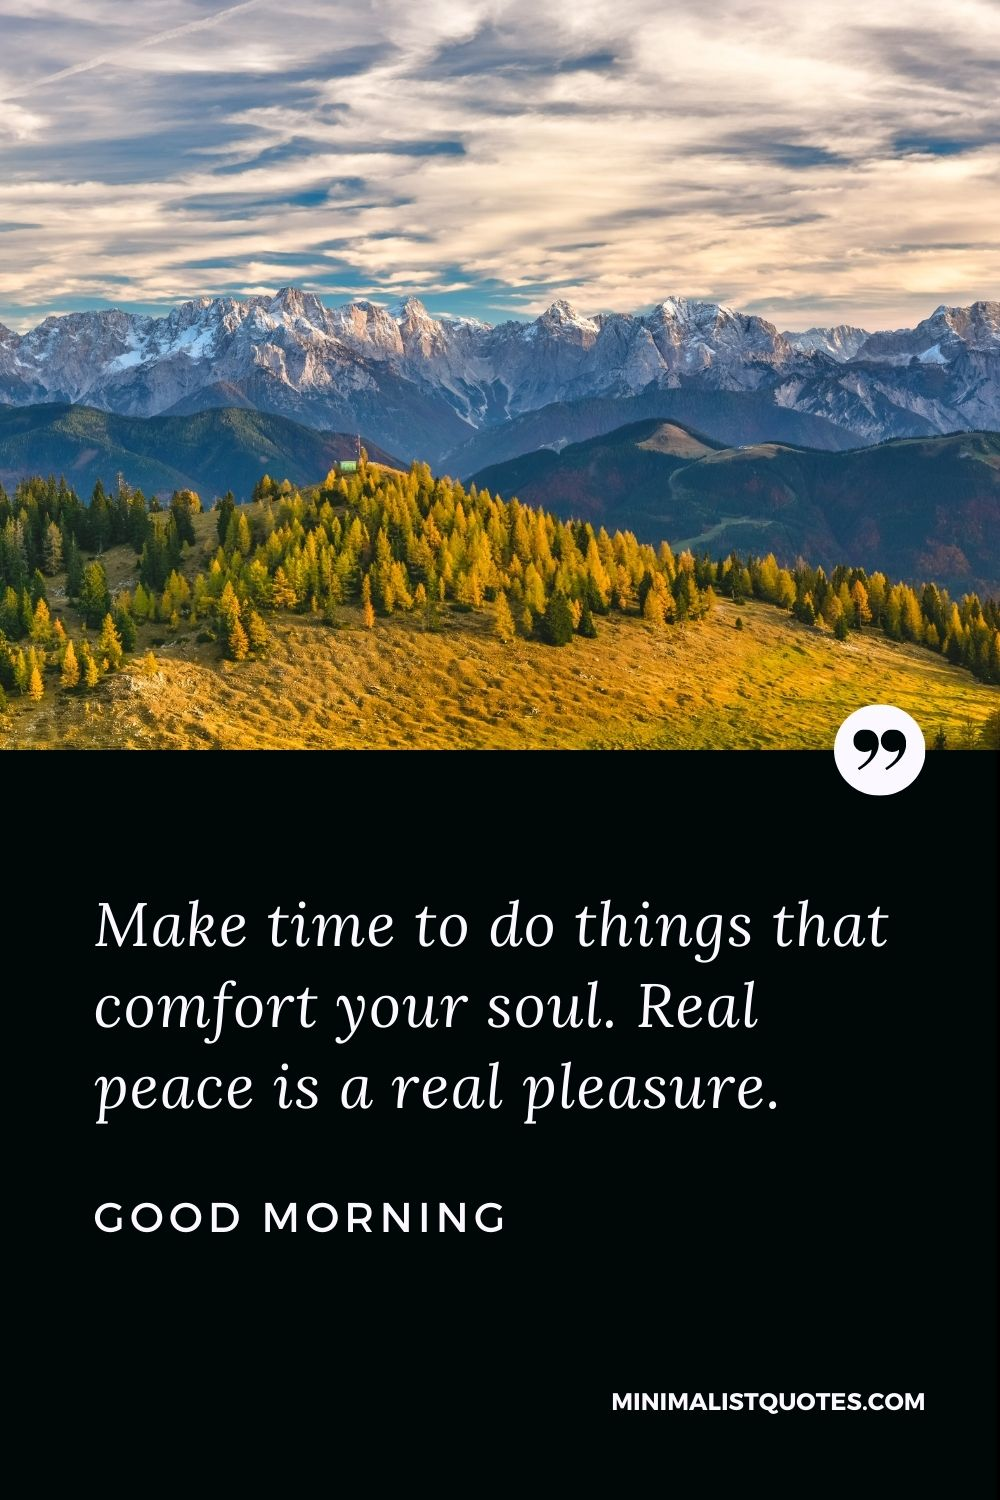 Good Morning Wish & Message With Image: Make time to do things that comfort your soul. Real peace is a real pleasure.